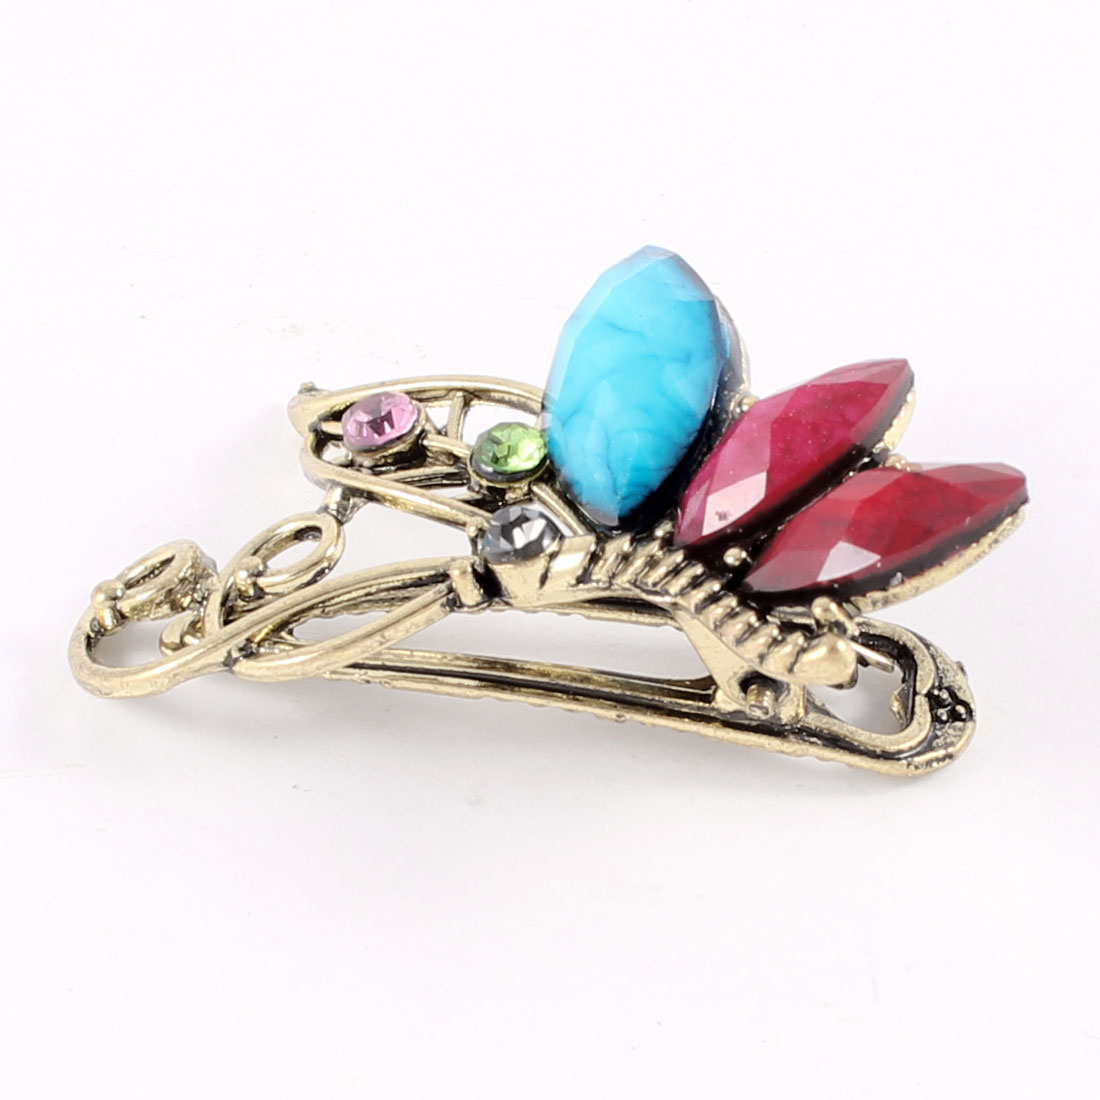 Turquoise Purple Oval Beads Accent Bronze Tone Single Prong Hair Clip Hairclip